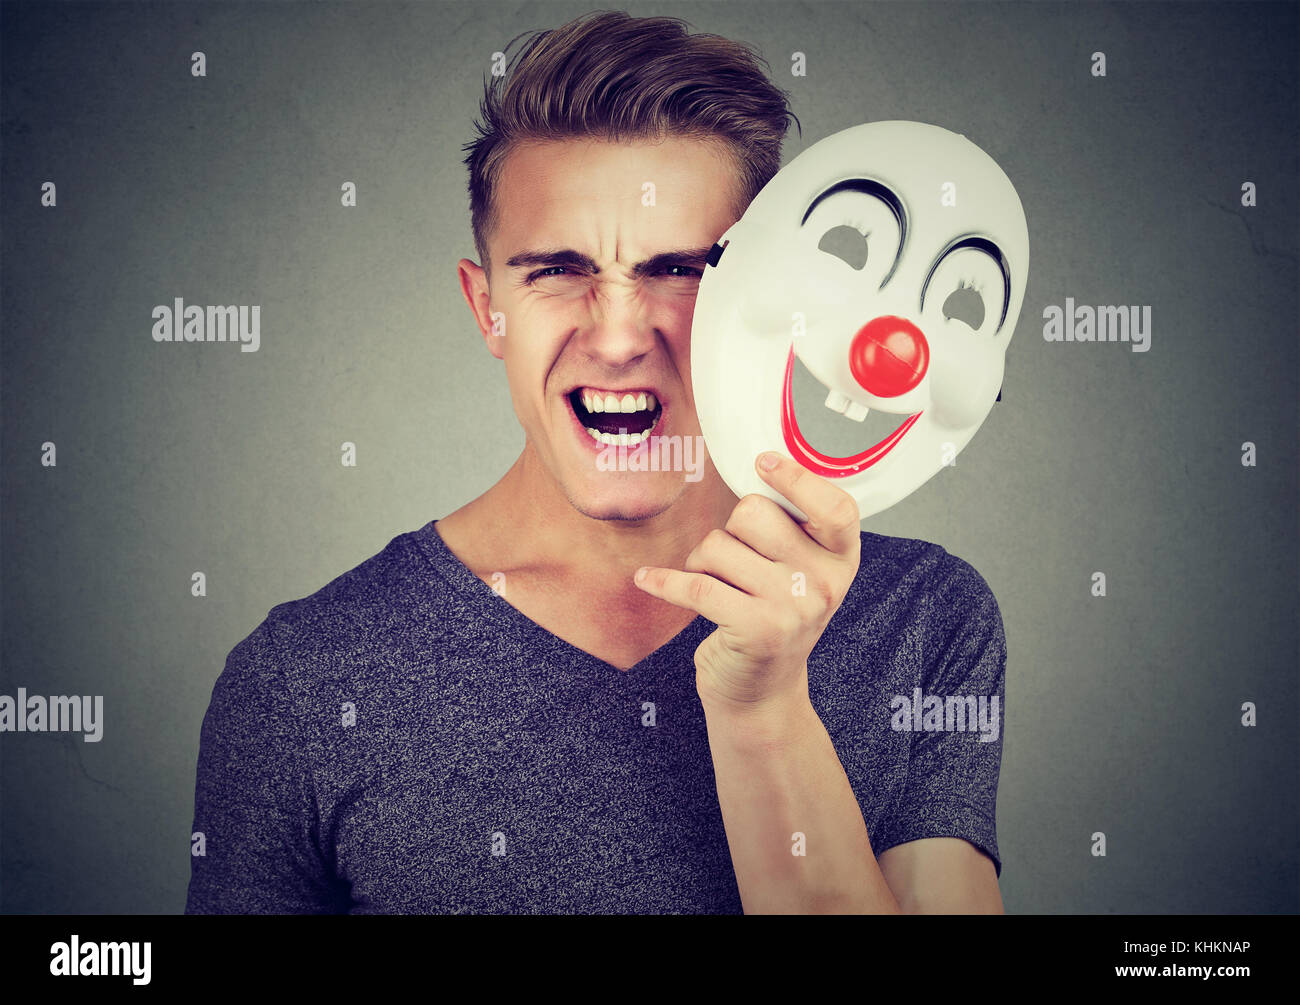 Portrait angry screaming man taking off a clown mask expressing happiness isolated on gray background. Human emotions Stock Photo